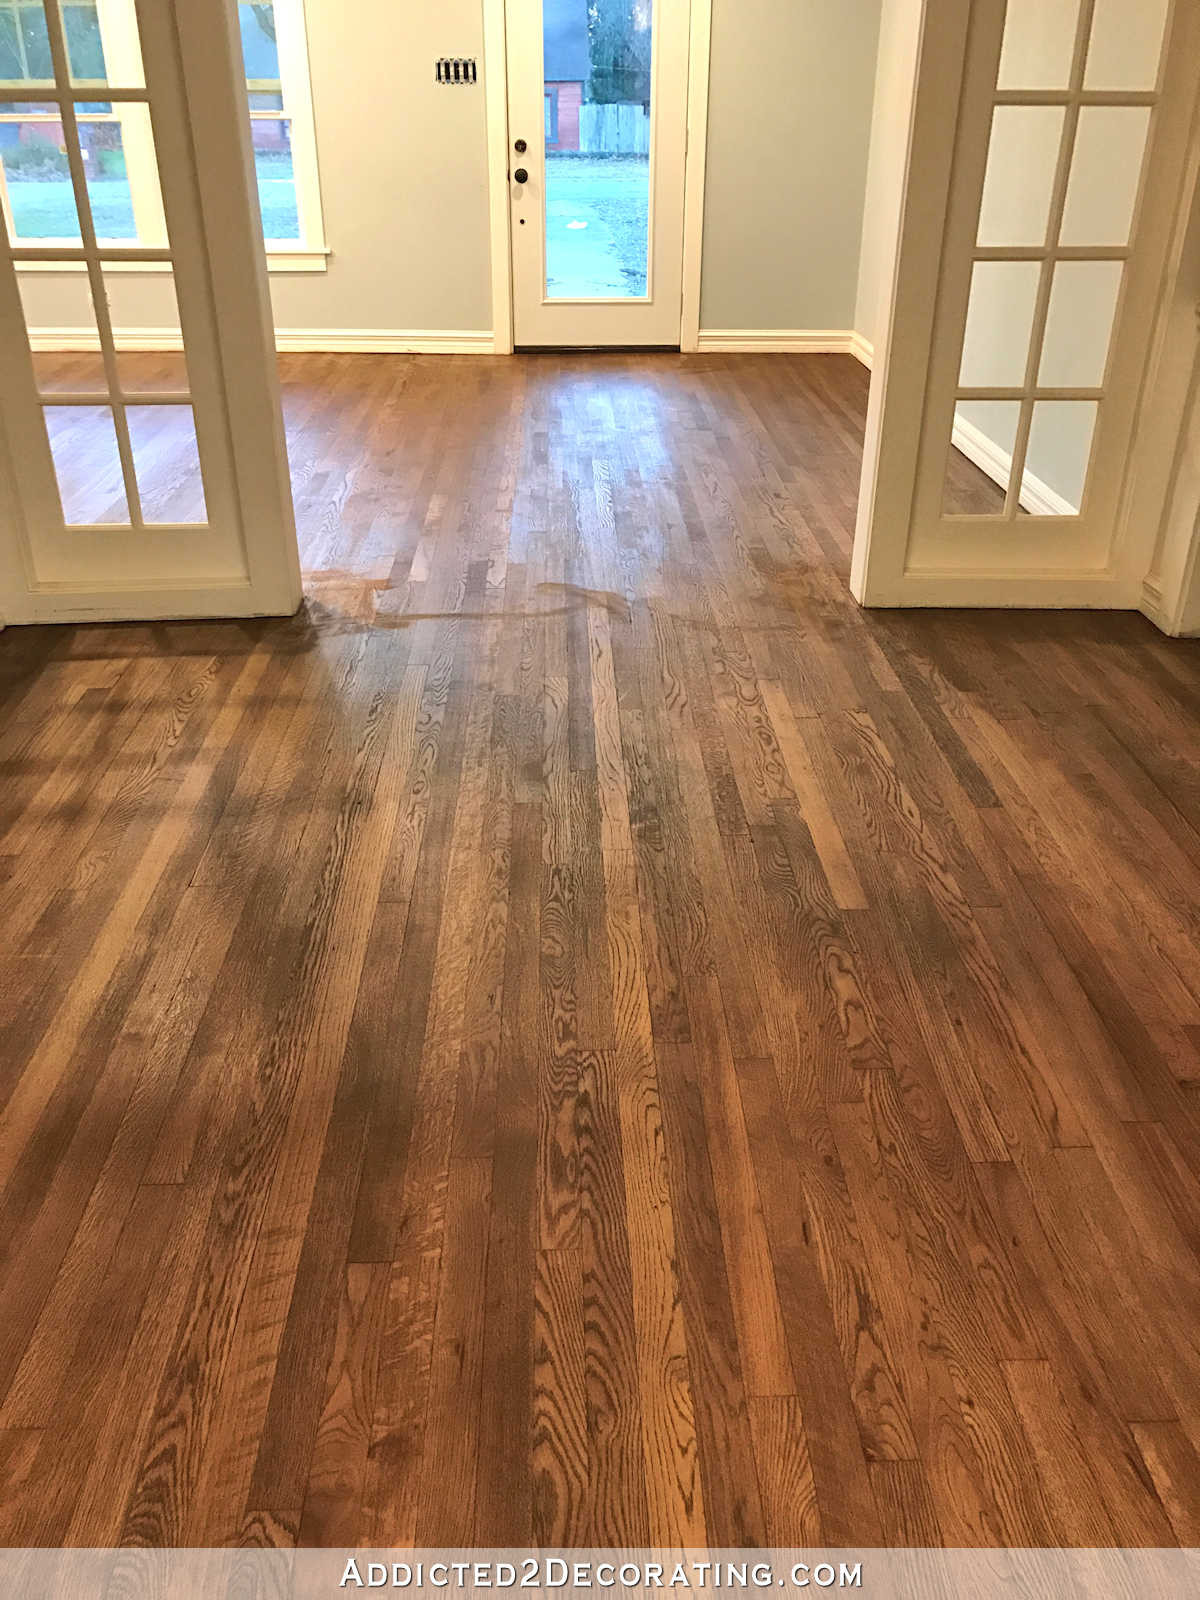 how to refinish my hardwood floors of adventures in staining my red oak hardwood floors products process for staining red oak hardwood floors 9 stain on entryway and music room floors